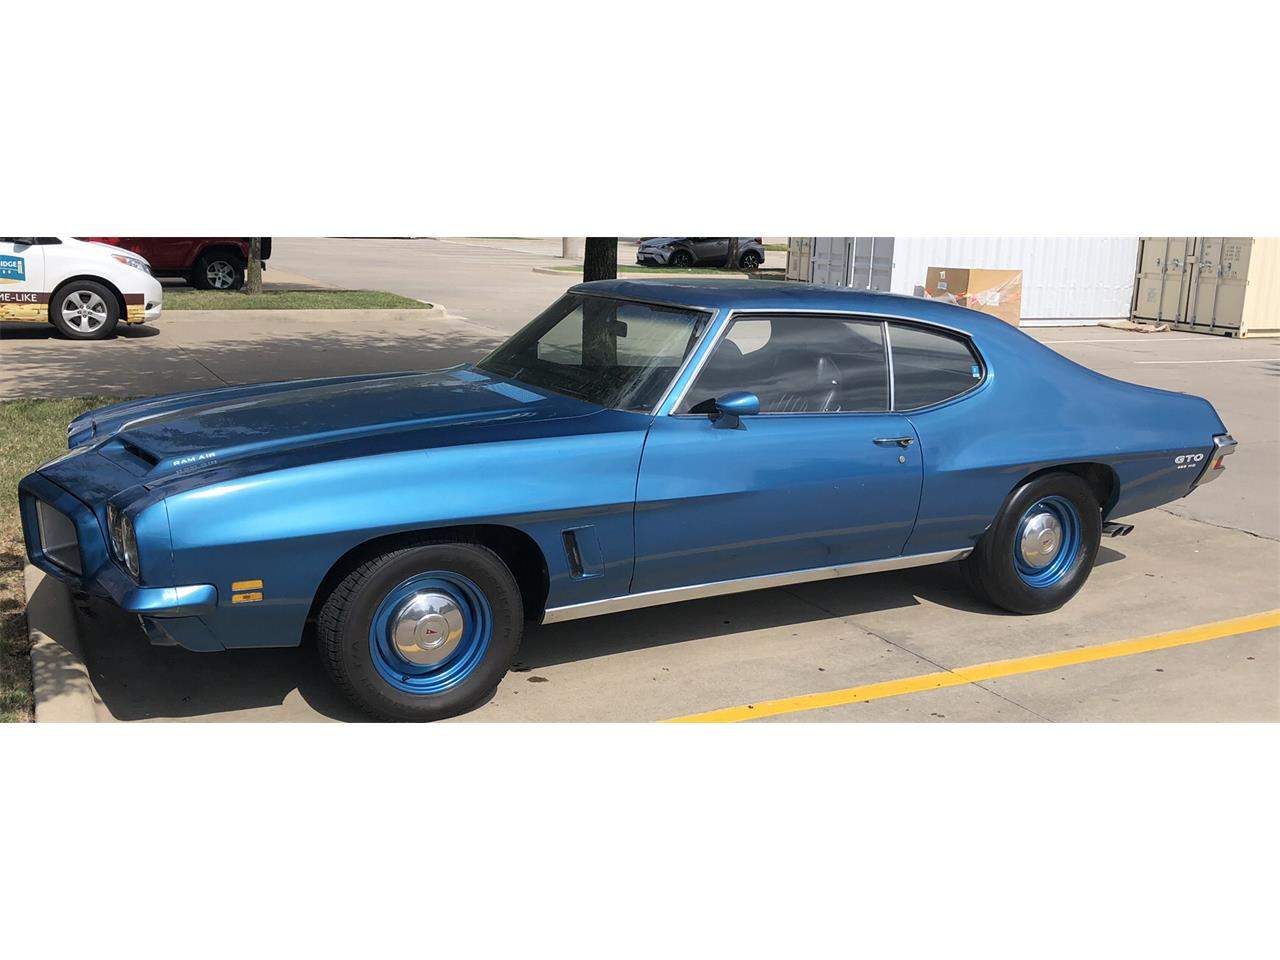 Large Picture of '72 Pontiac GTO located in Richardson Texas - $37,500.00 - OLDK